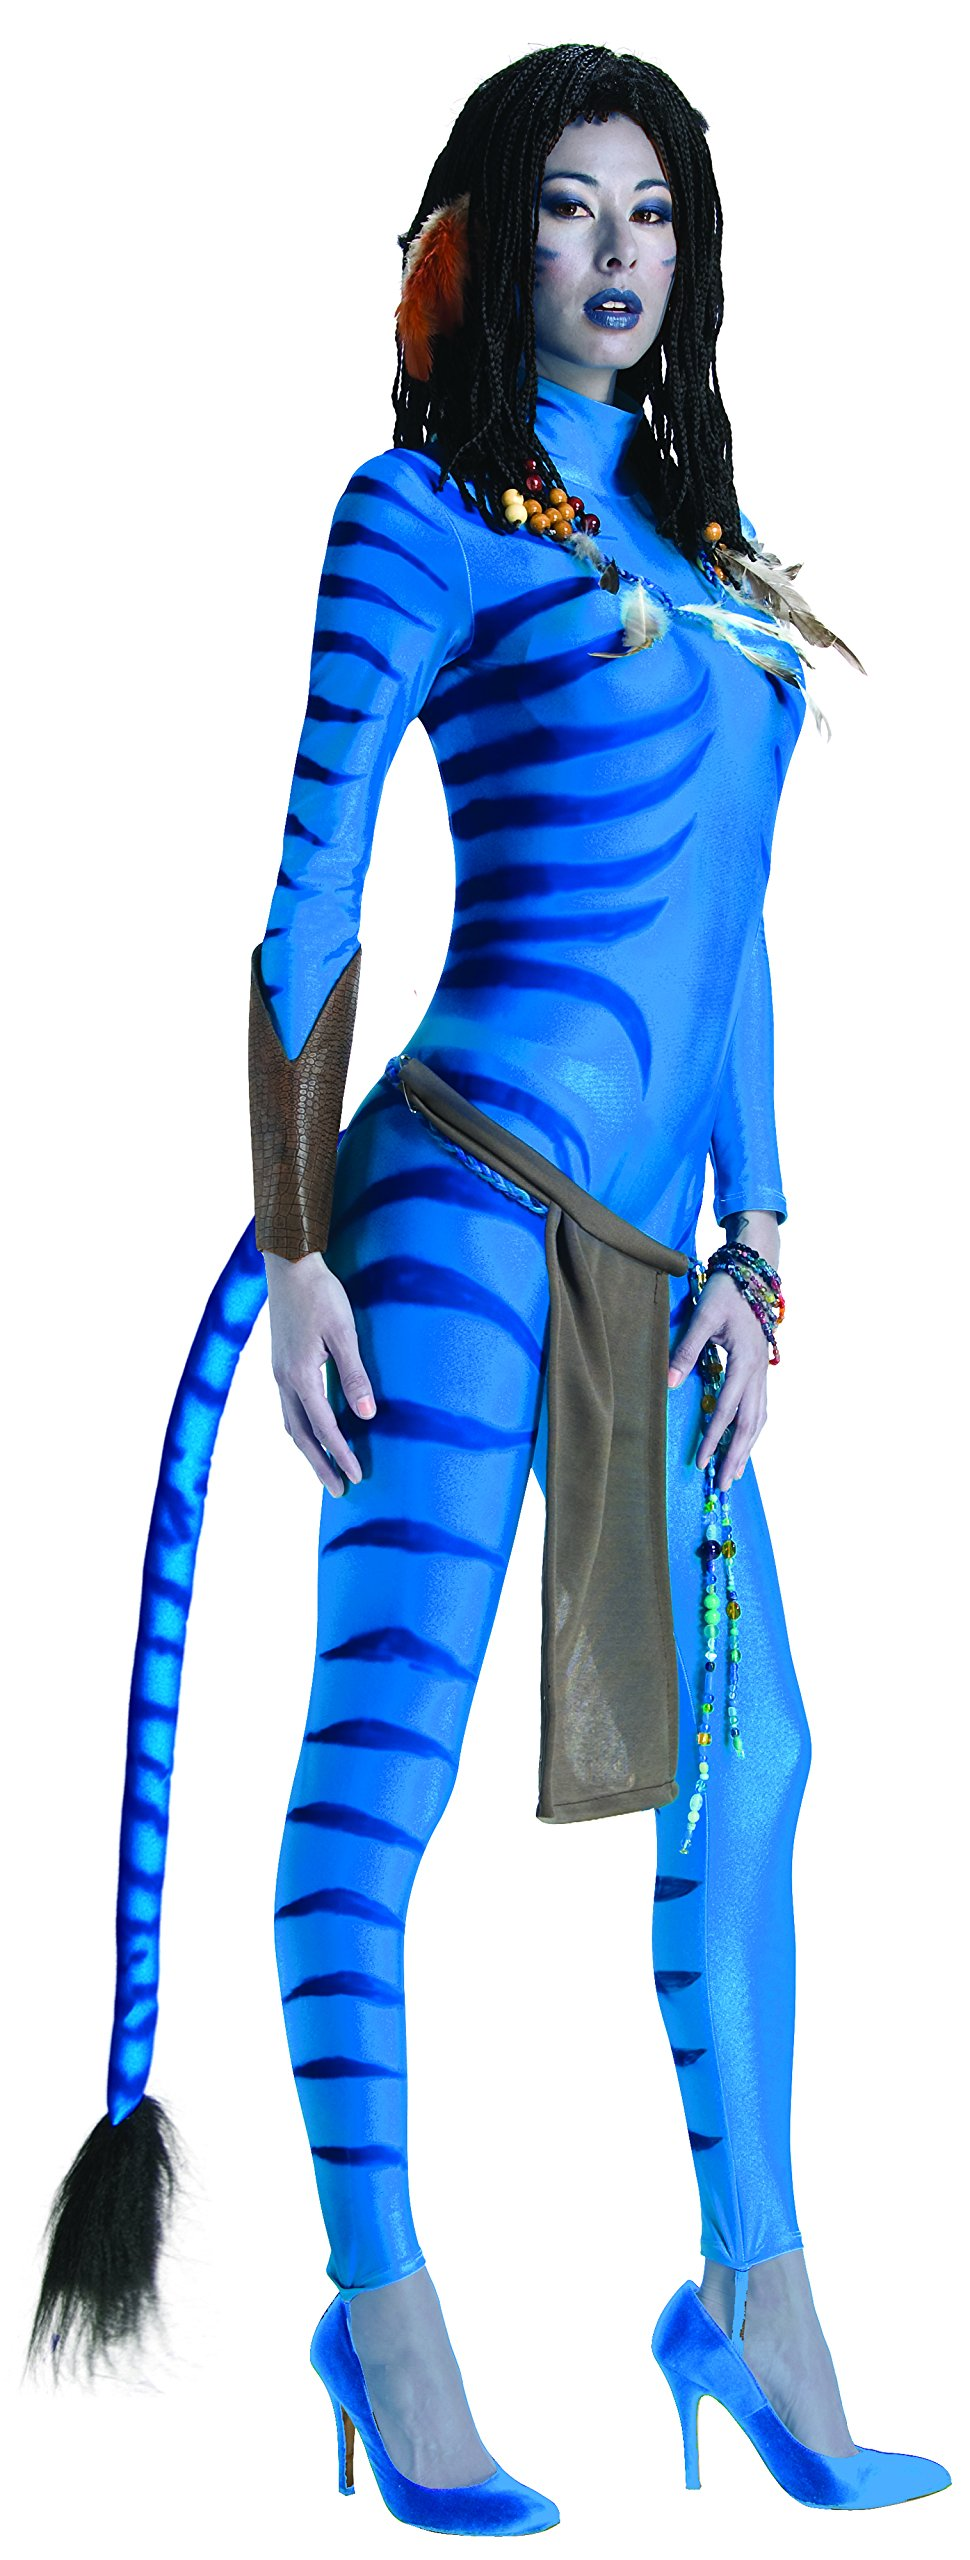 Secret Wishes Avatar Neytiri Costume - 81 fc5xu5jL - Avatar Secret Wishes Neytiri Costume